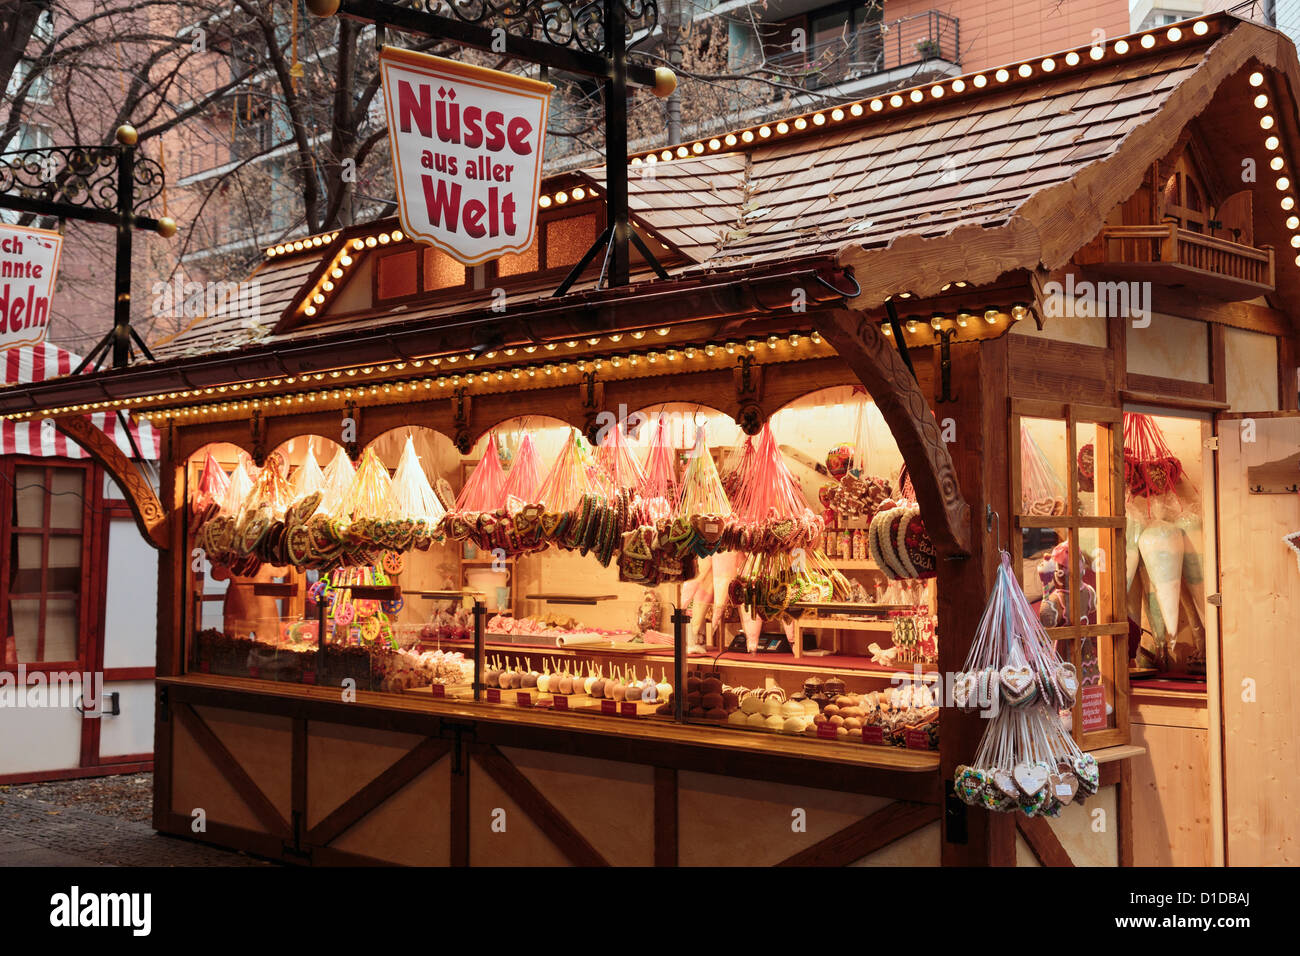 Traditional Christmas Wooden Market Stall Selling Sweets